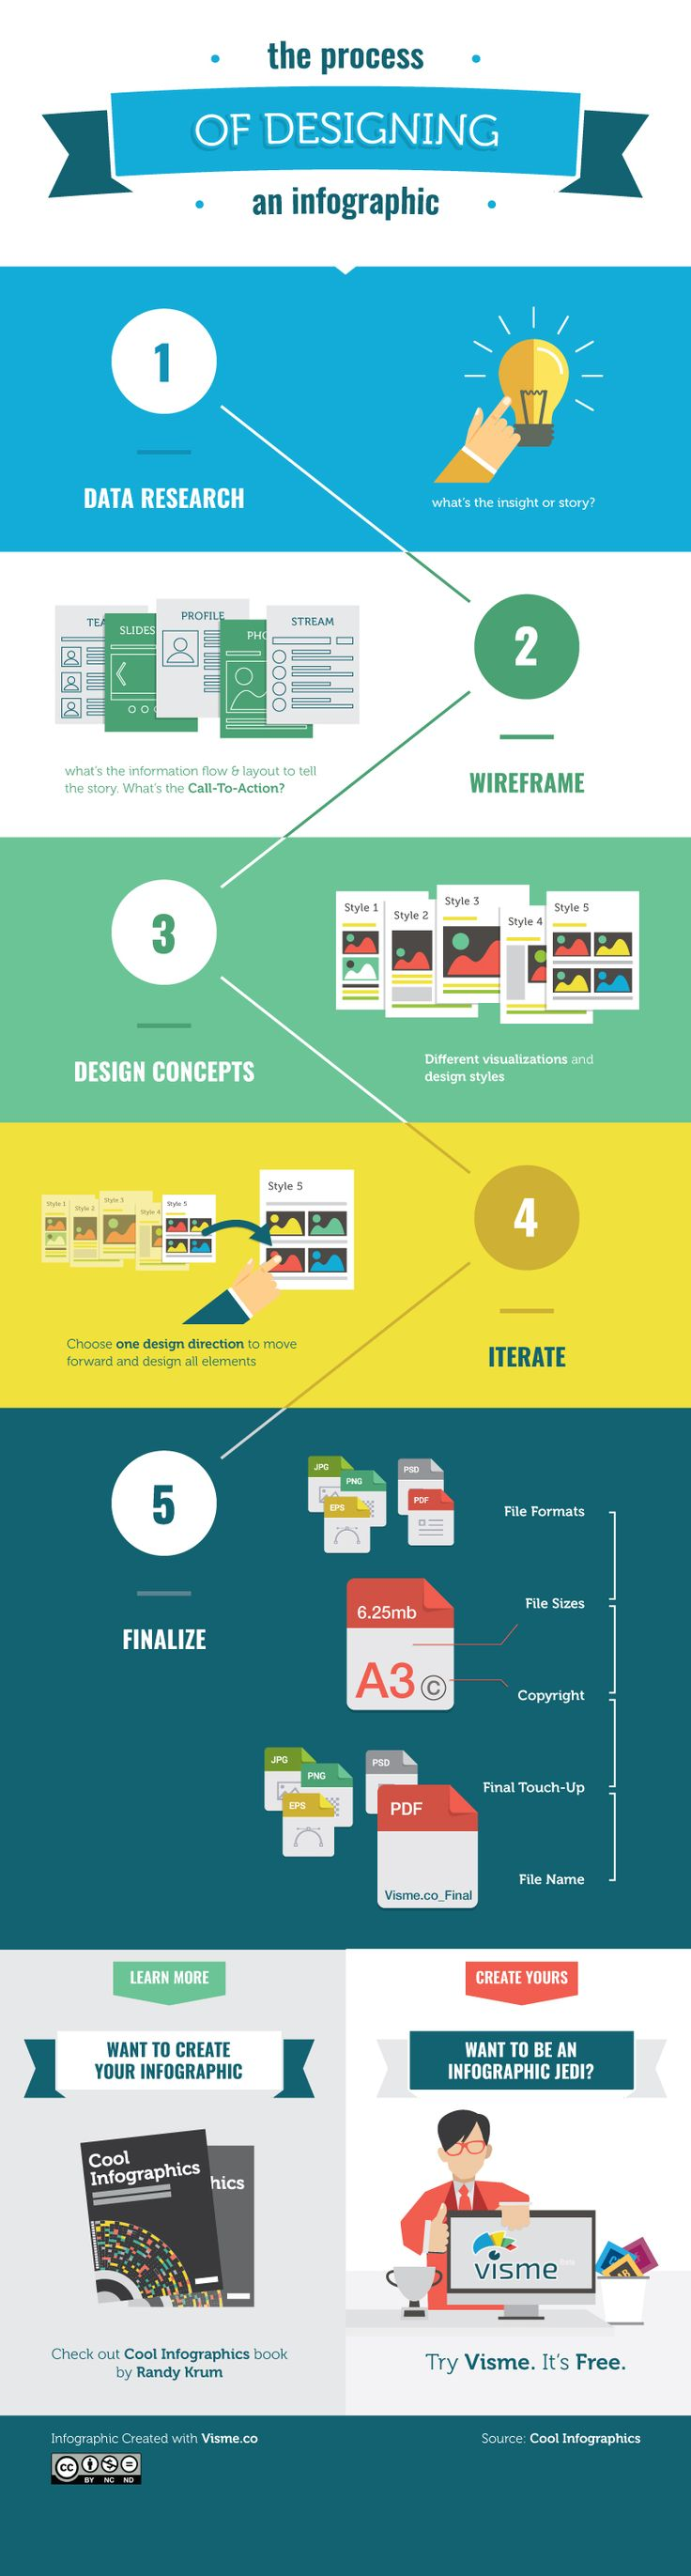 168 best Infographic Design Inspirations images on Pinterest | Info ...